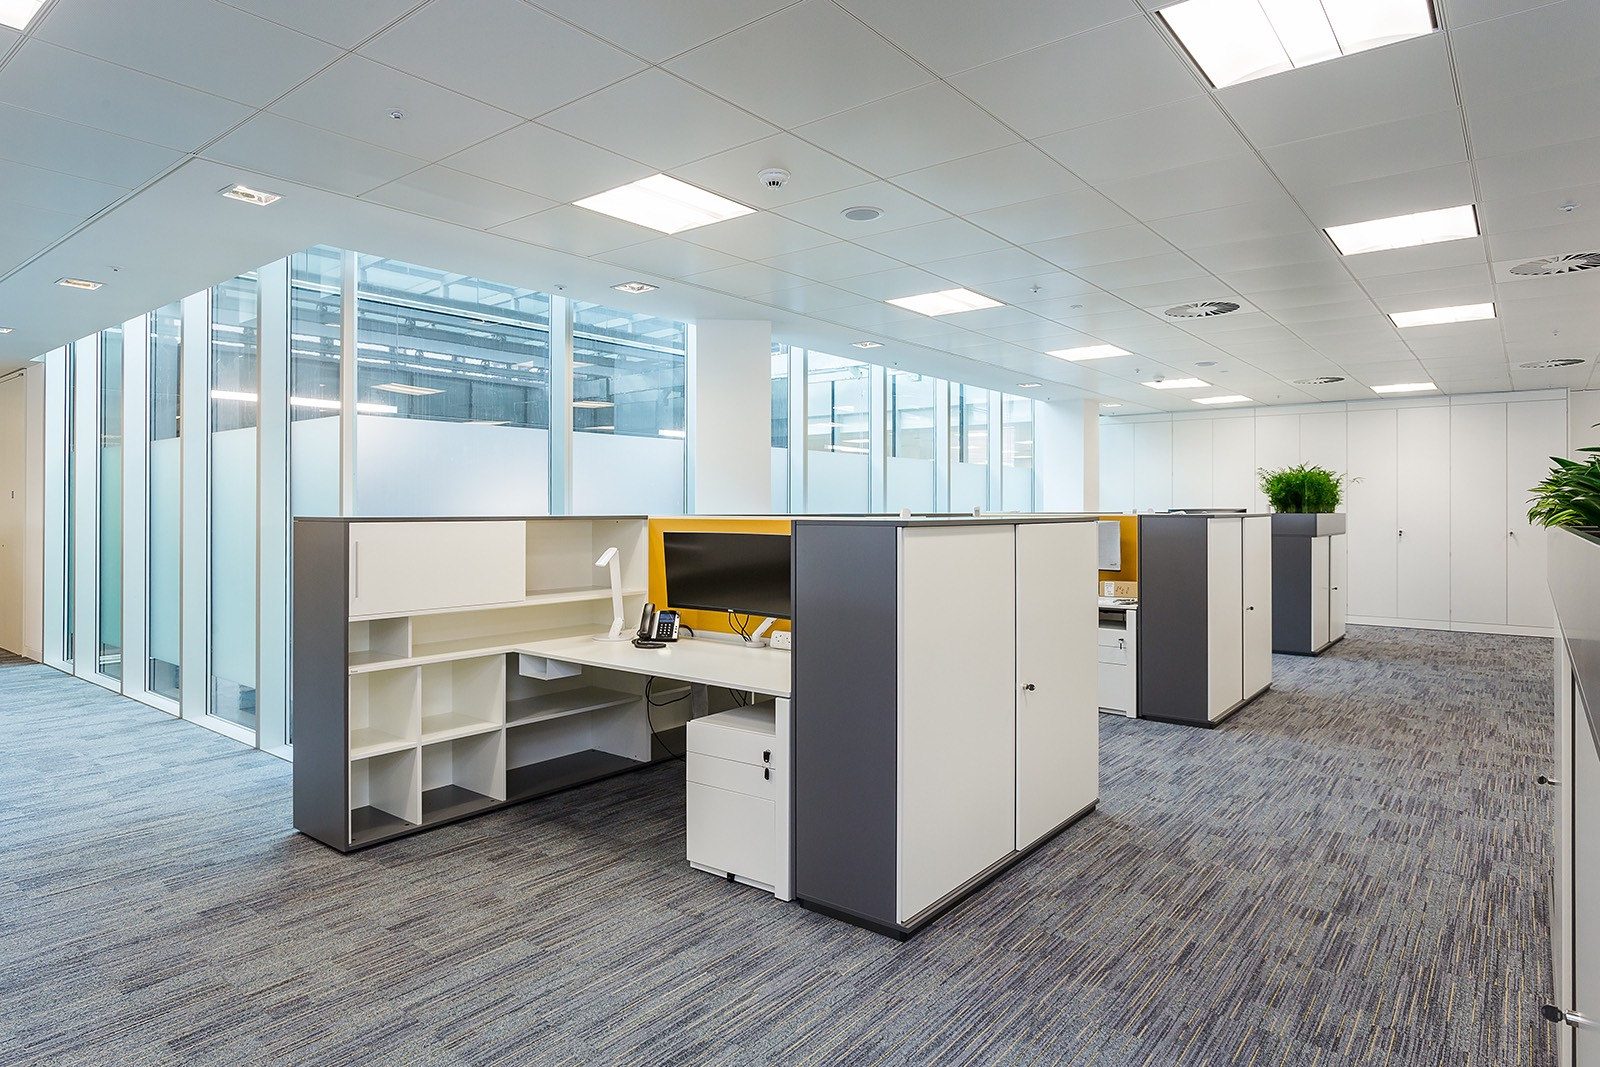 wedlake-bell-london-office-8